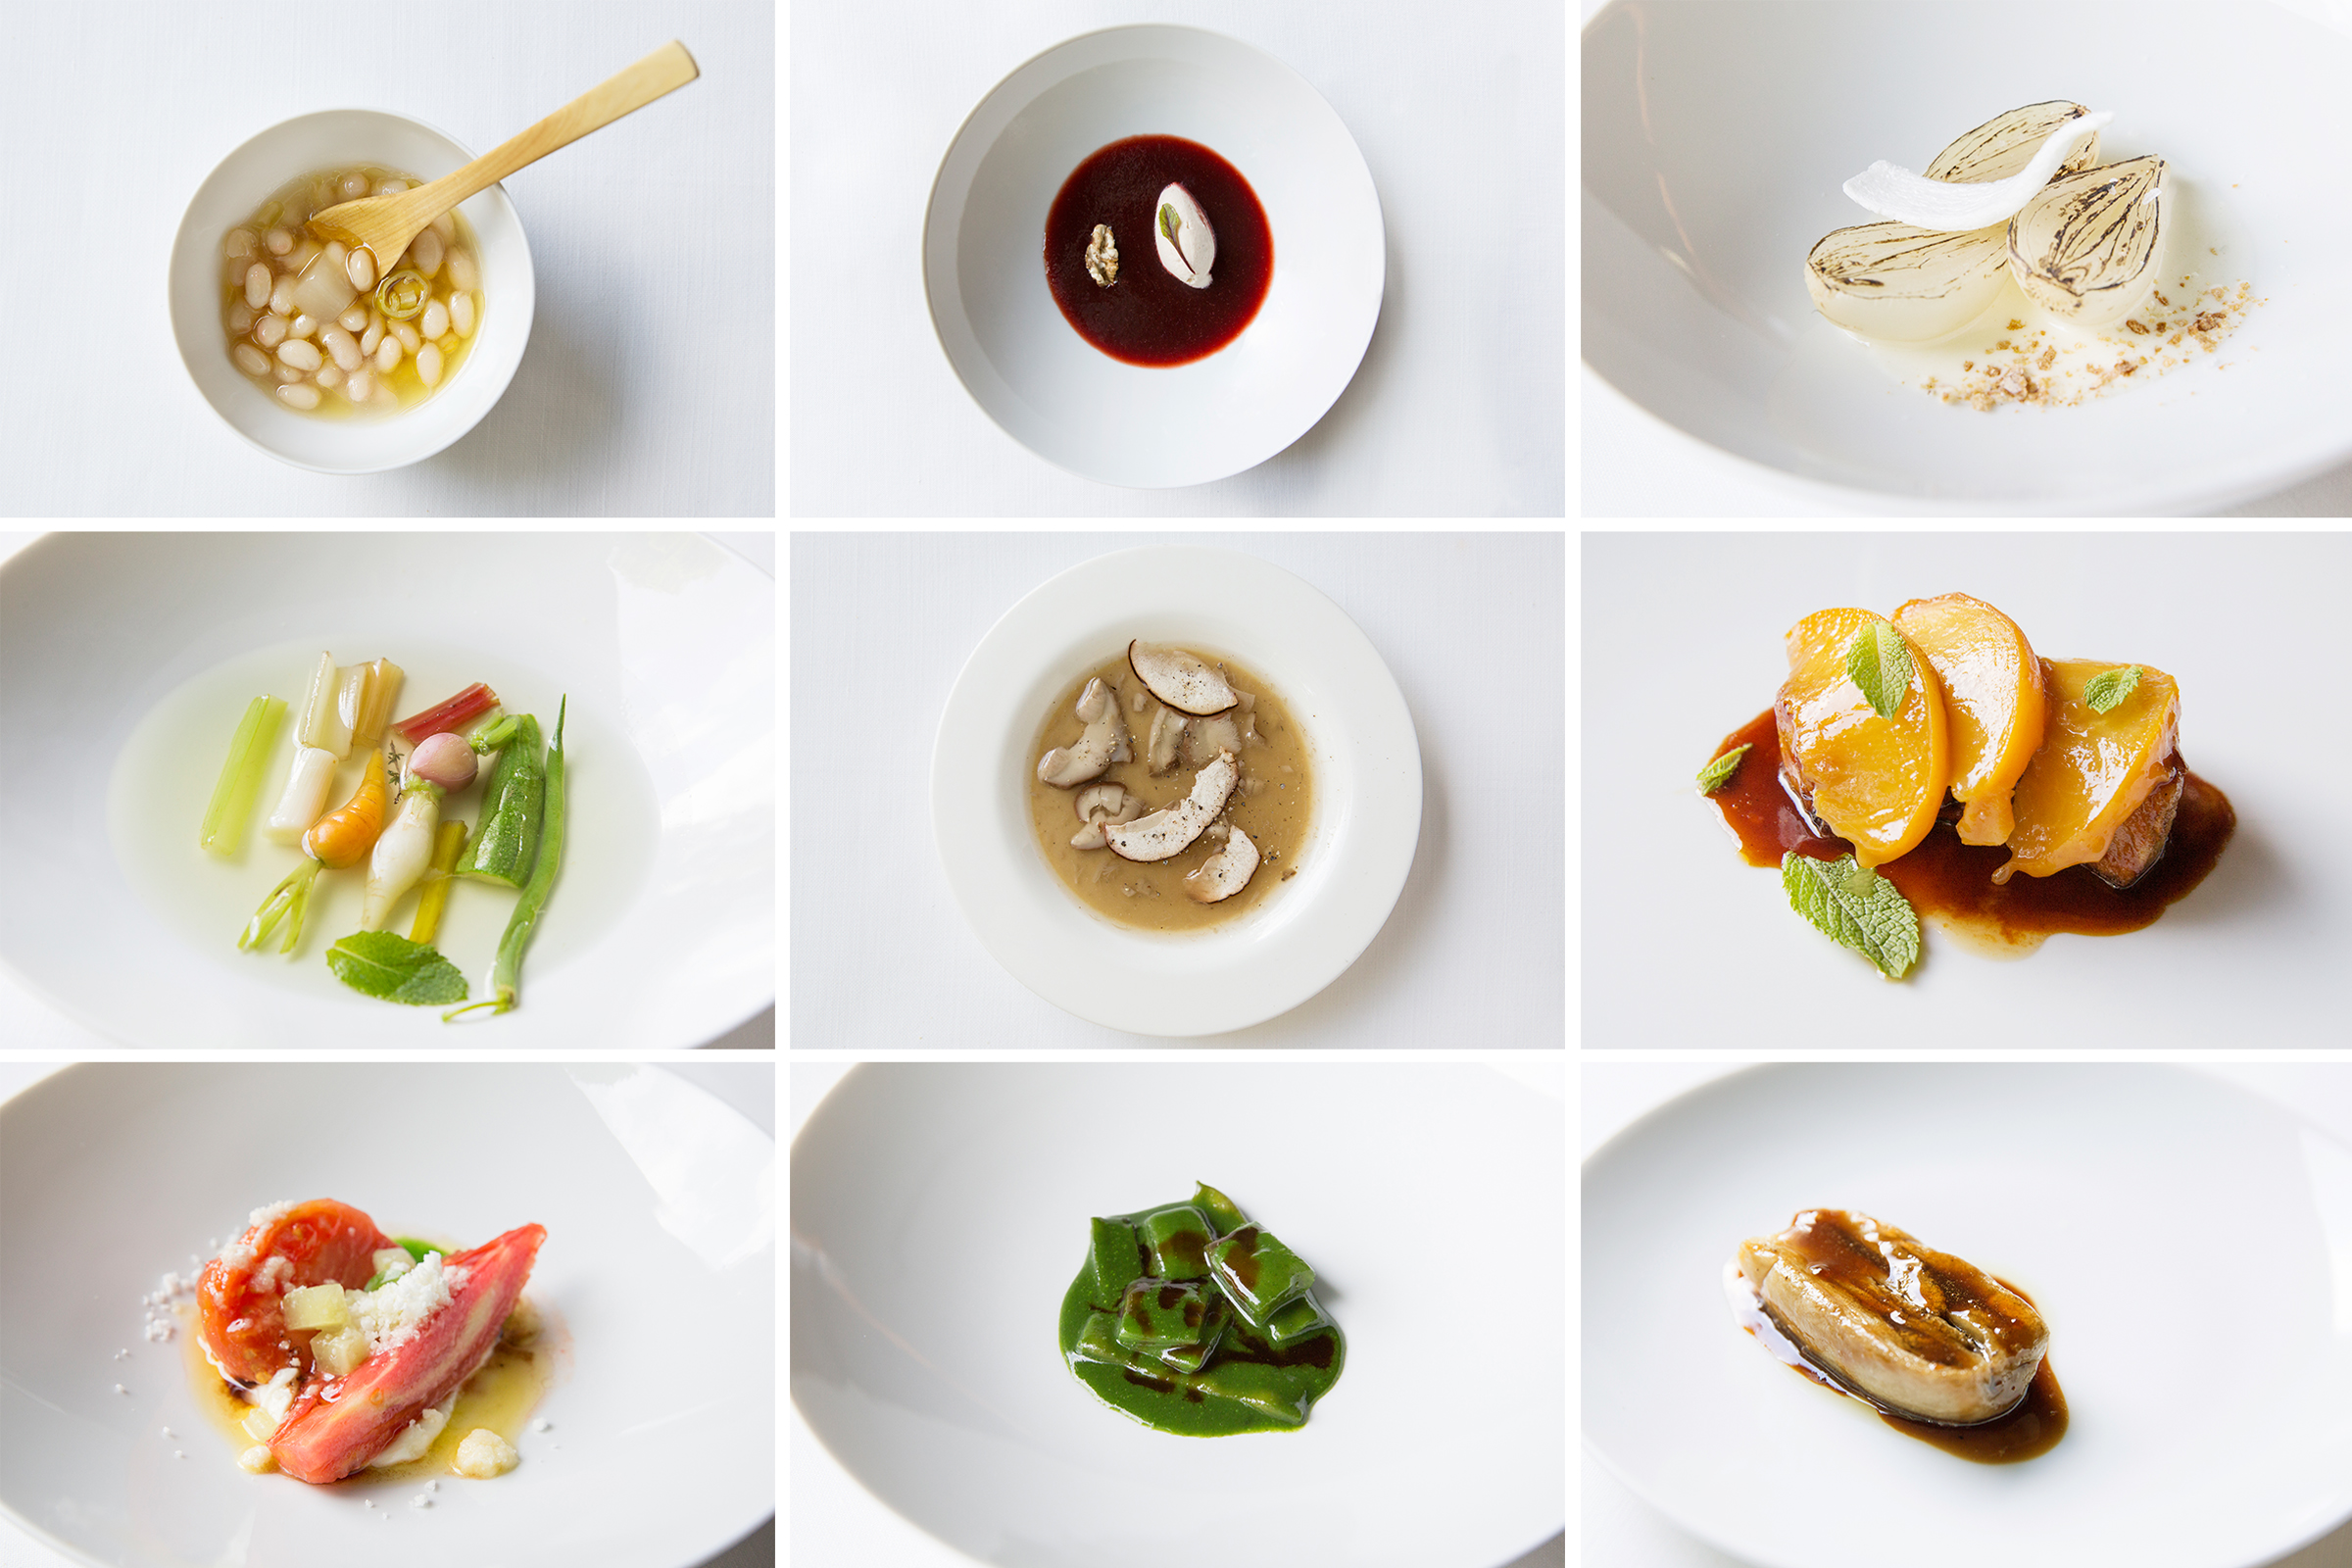 Sterne_michelin_restaurant_les_cols_G8